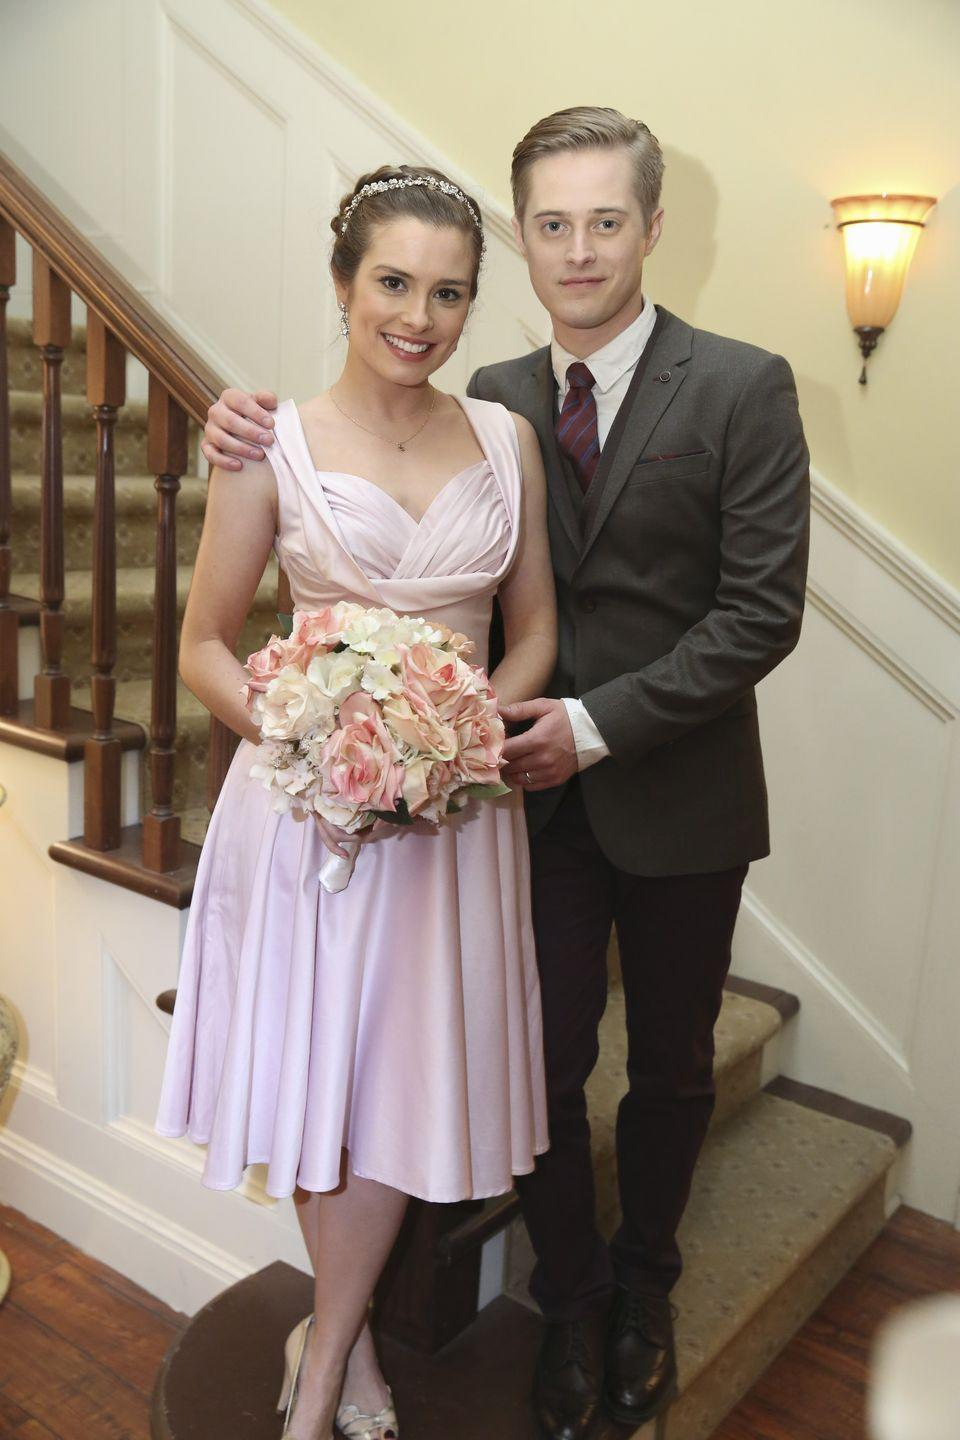 <p>For her surprise at-home wedding to Toby, Lily Summers kept her wedding look simple opting for a blush cross-neck tea-length dress and a crystal headpiece instead of the classic white dress. Toby's burgundy tie matched perfectly! </p>